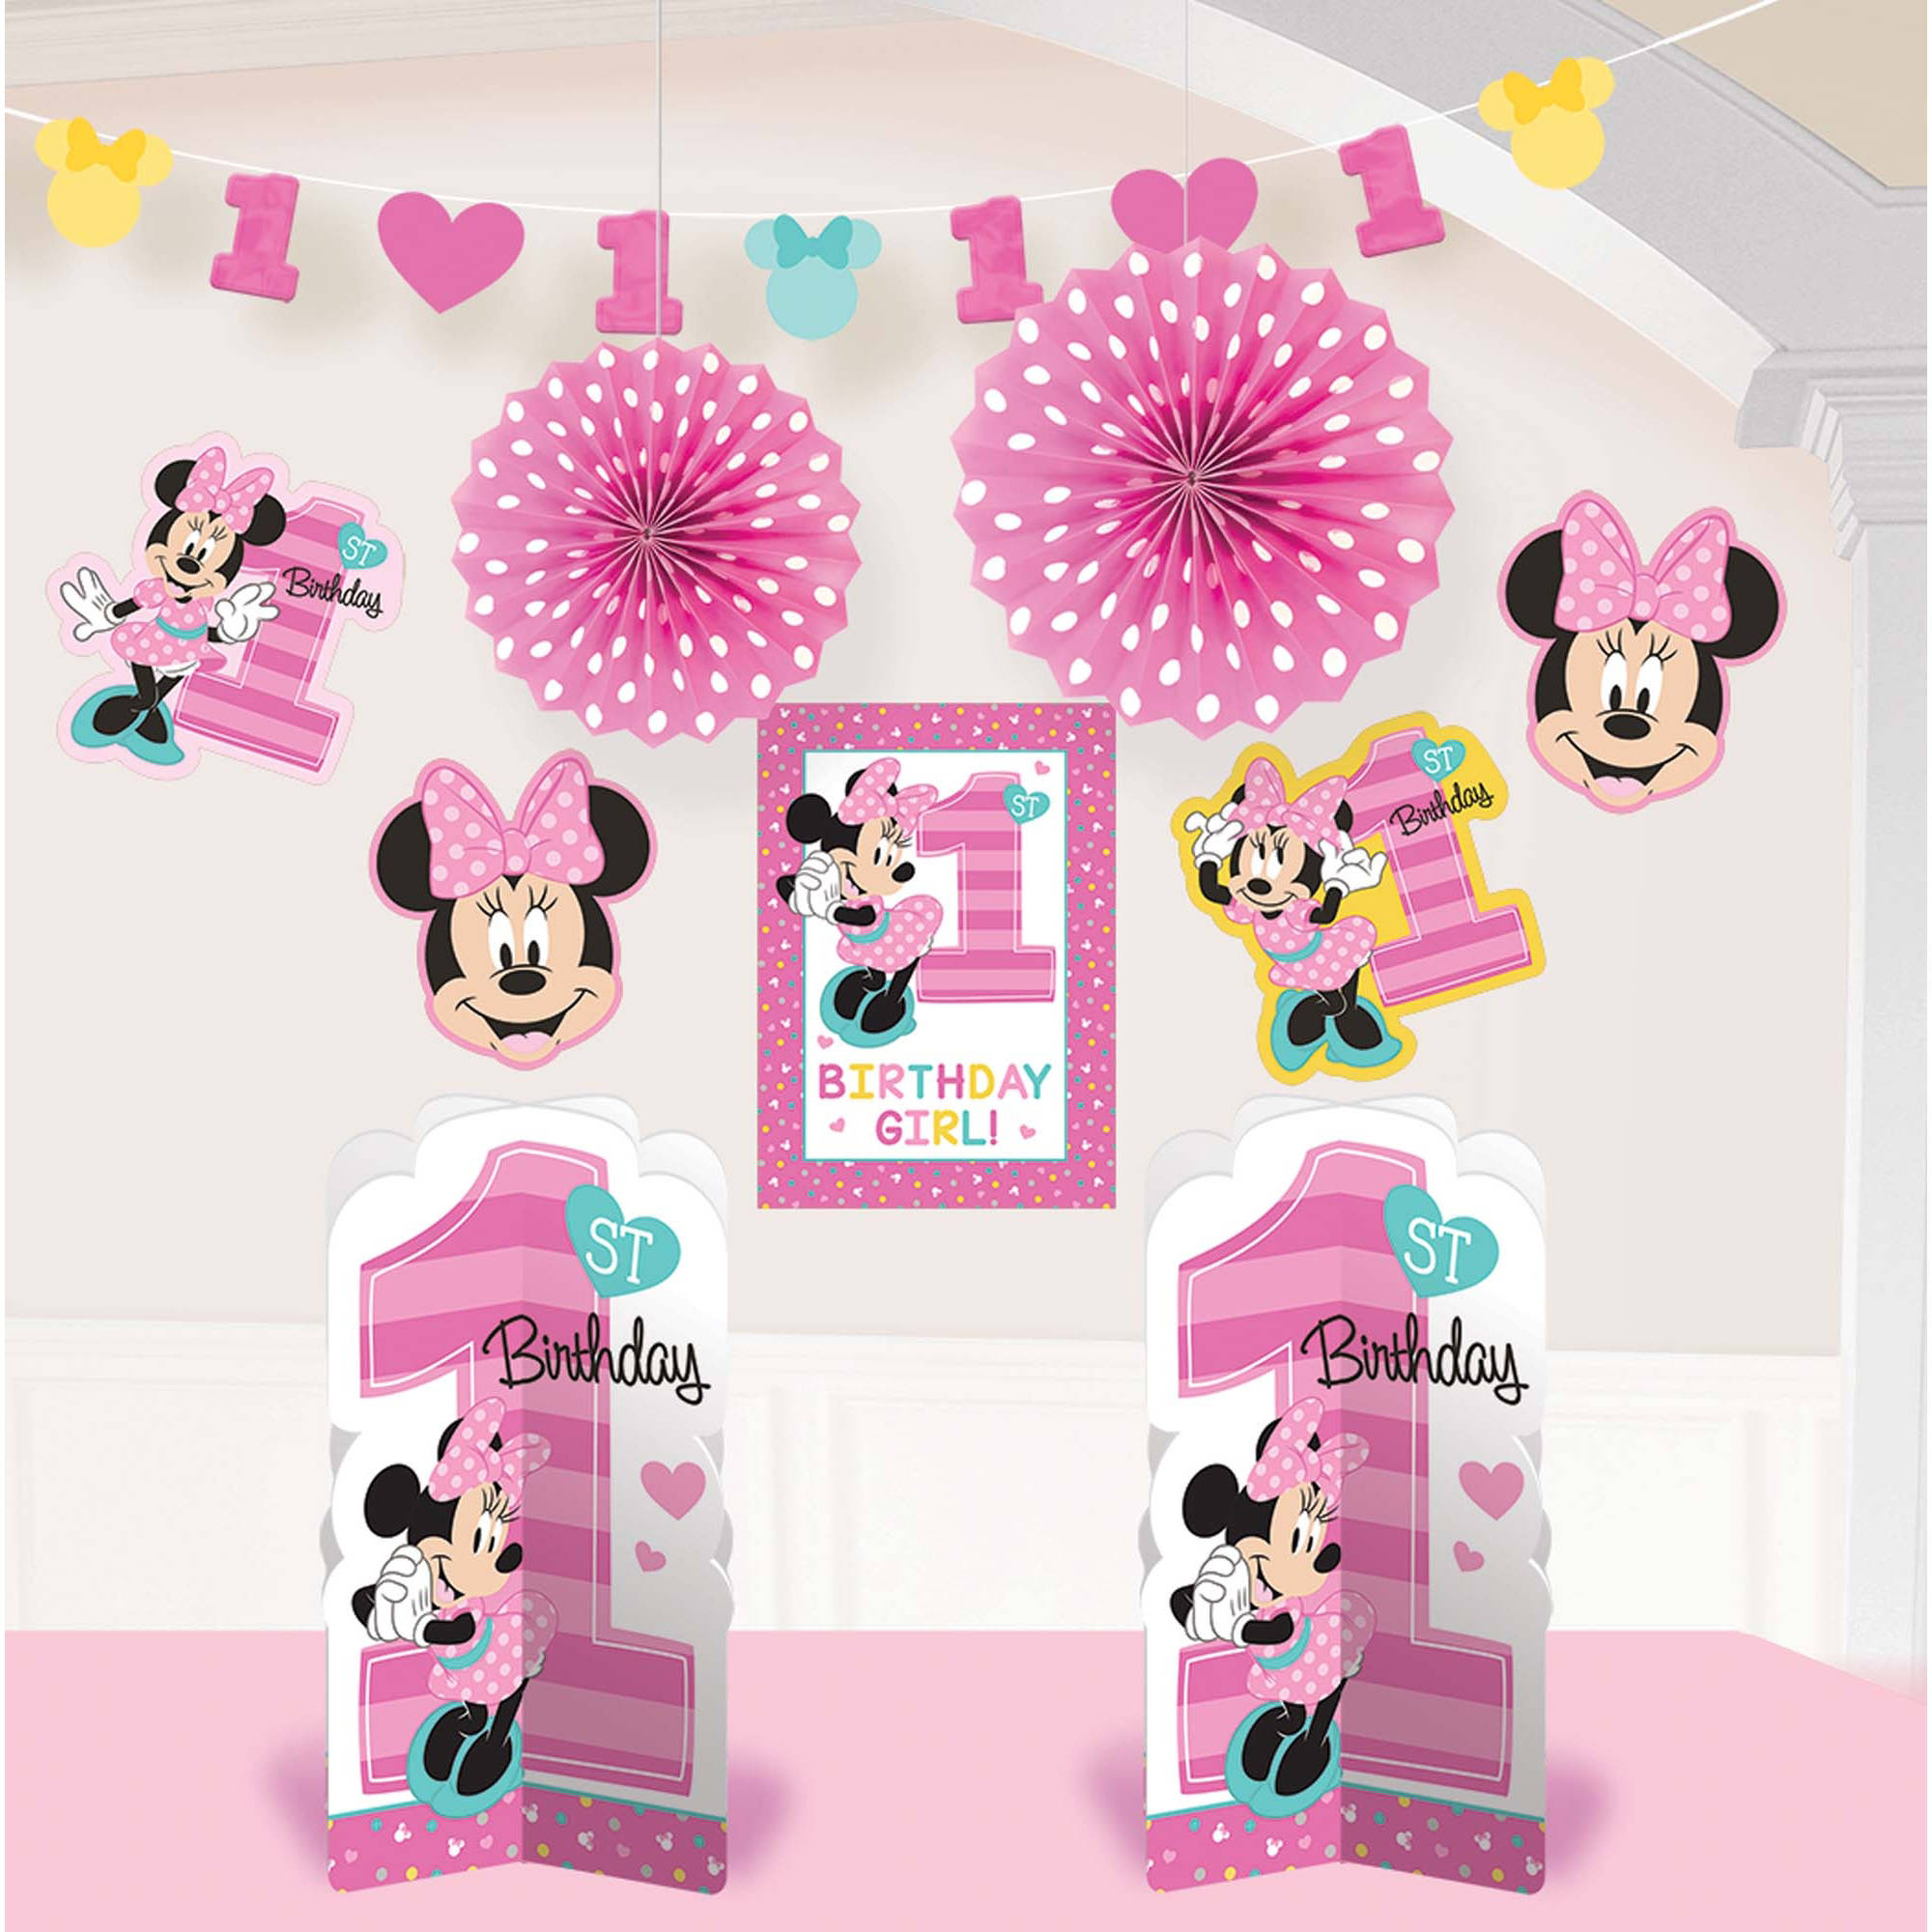 Disney Minnie's Fun to Be One 1st Birthday Party Room Decorations, 10pc